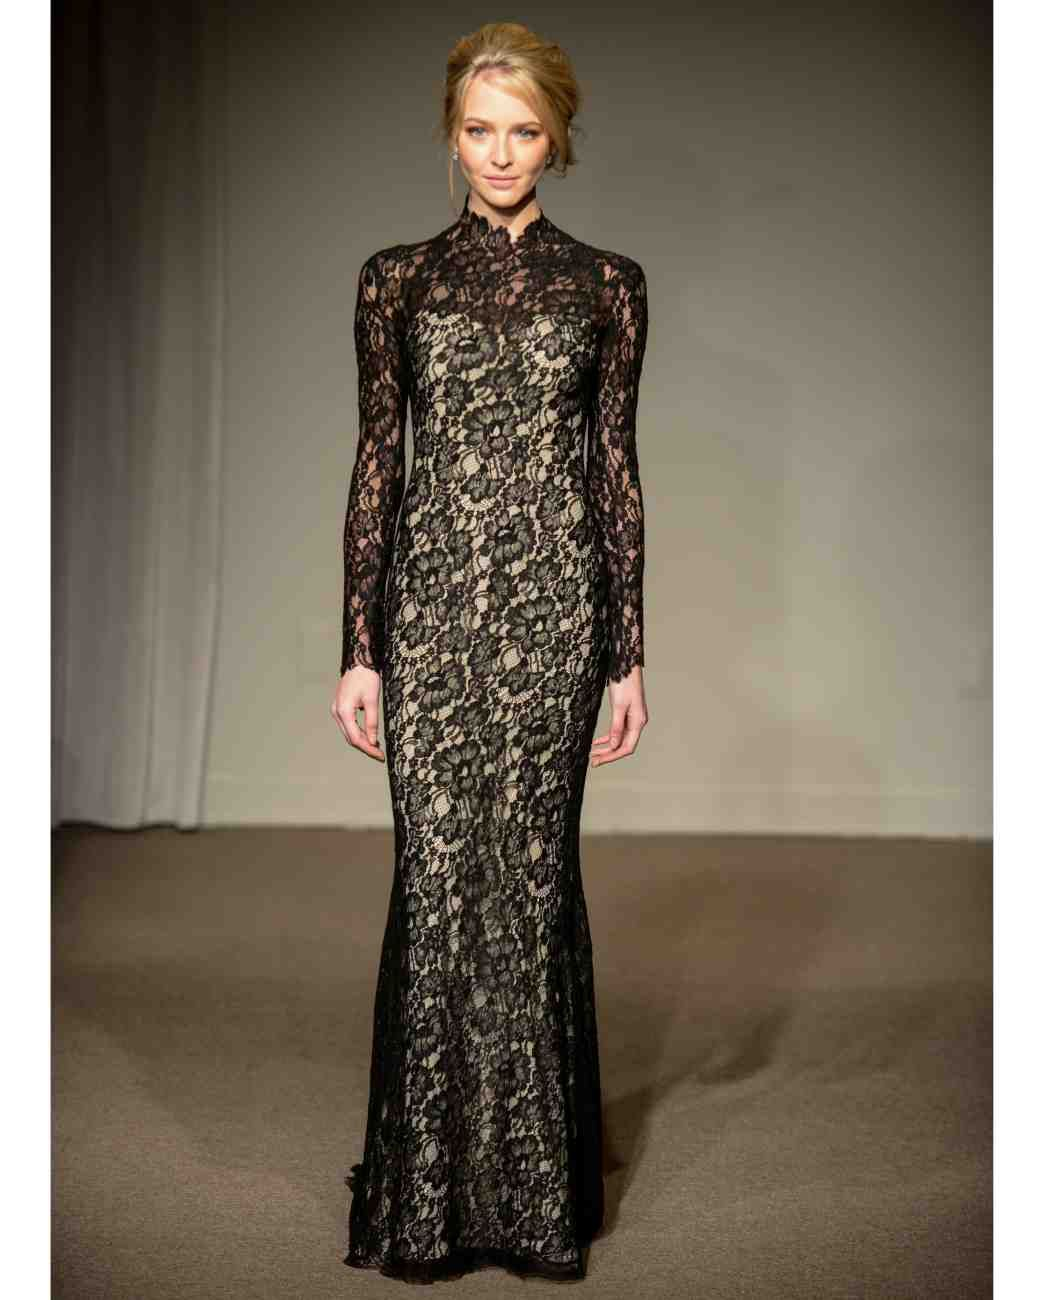 Form Fitting Wedding Gowns: Long-Sleeved Wedding Dresses We Love